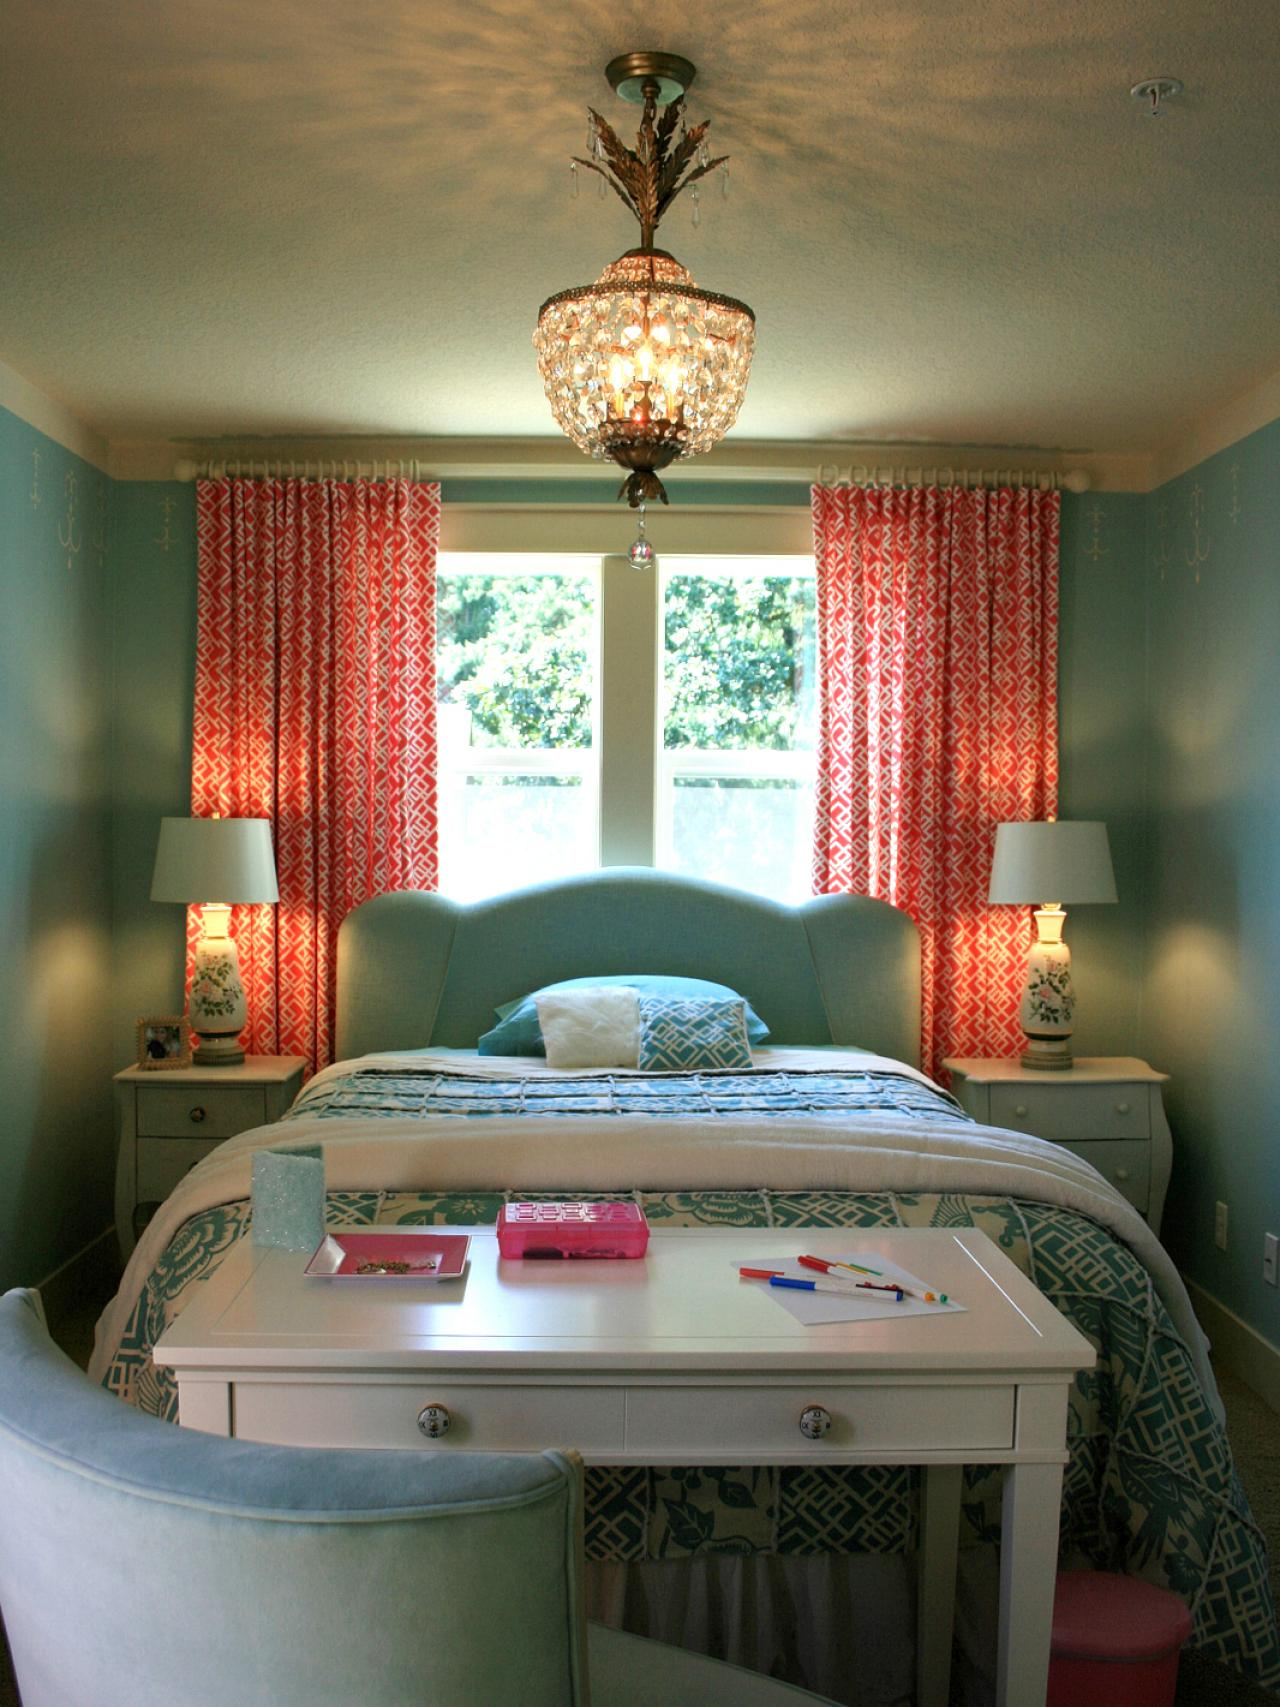 35 Gorgeous Girly Bedroom Design Ideas - Decoration Love on Small Bedroom Ideas For Girls  id=14934